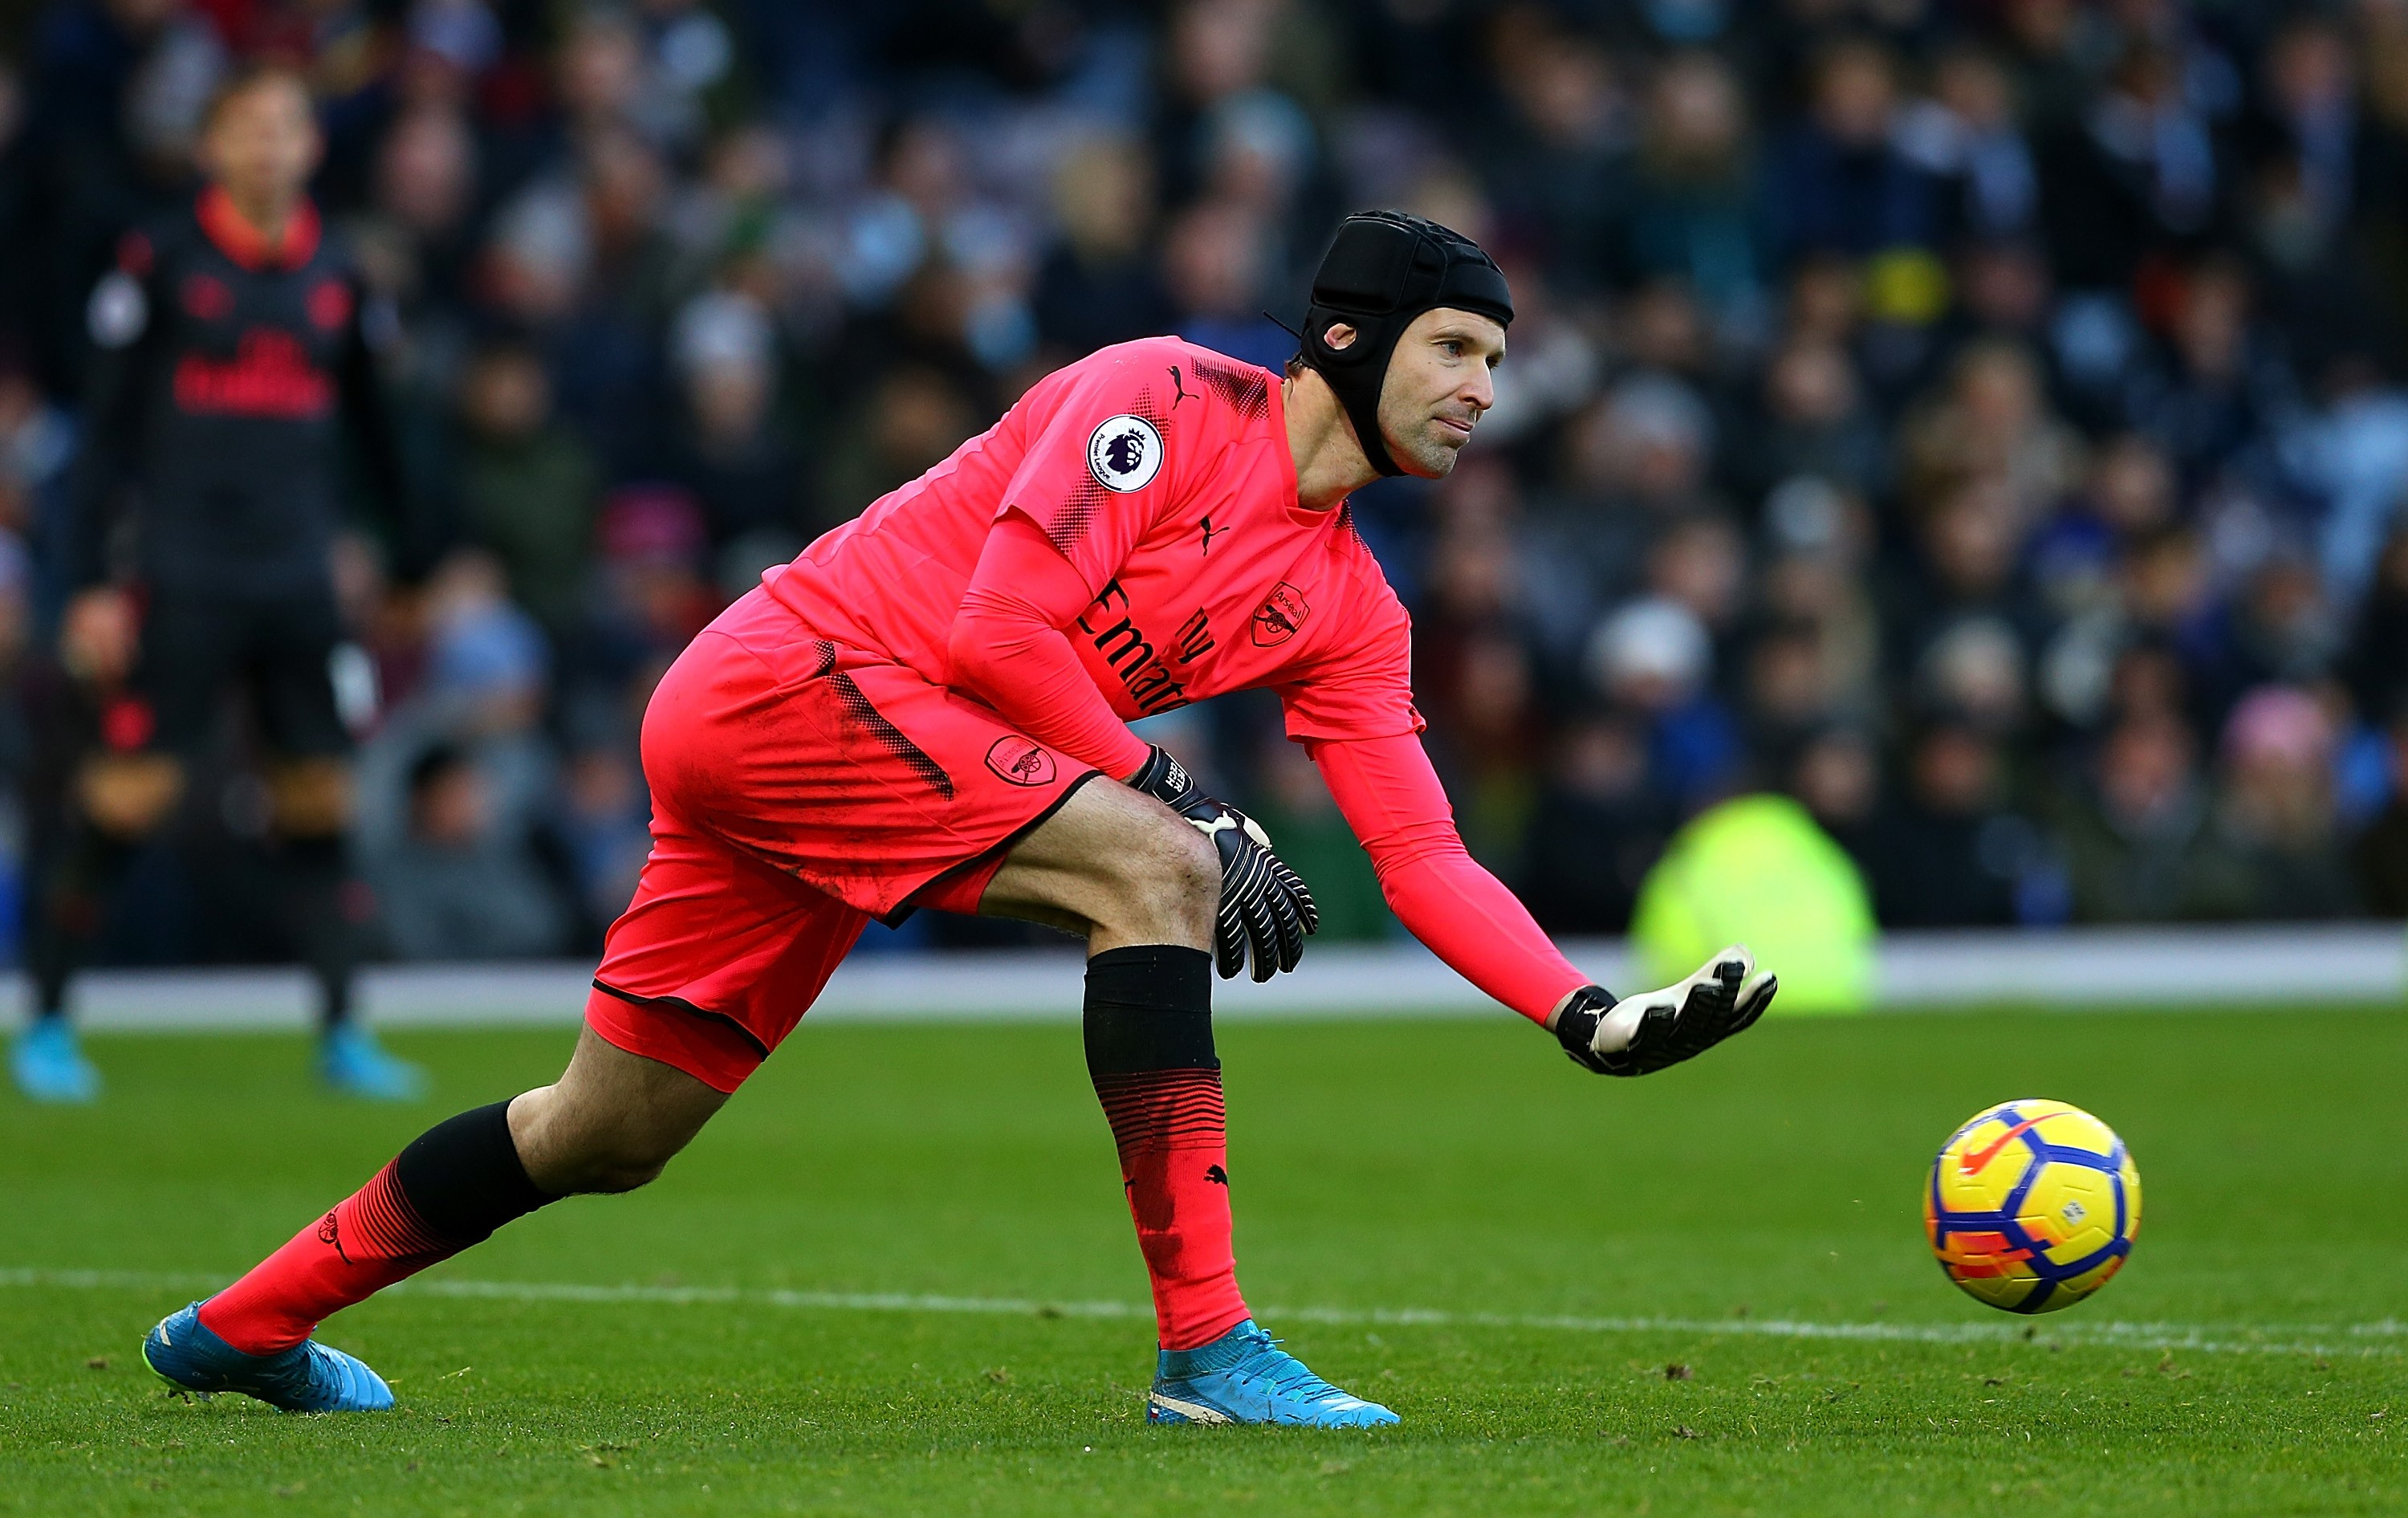 Petr Cech of Arsenal in action during the Premier League match between Burnley and Arsenal at Turf Moor on November 26, 2017 in Burnley, England.